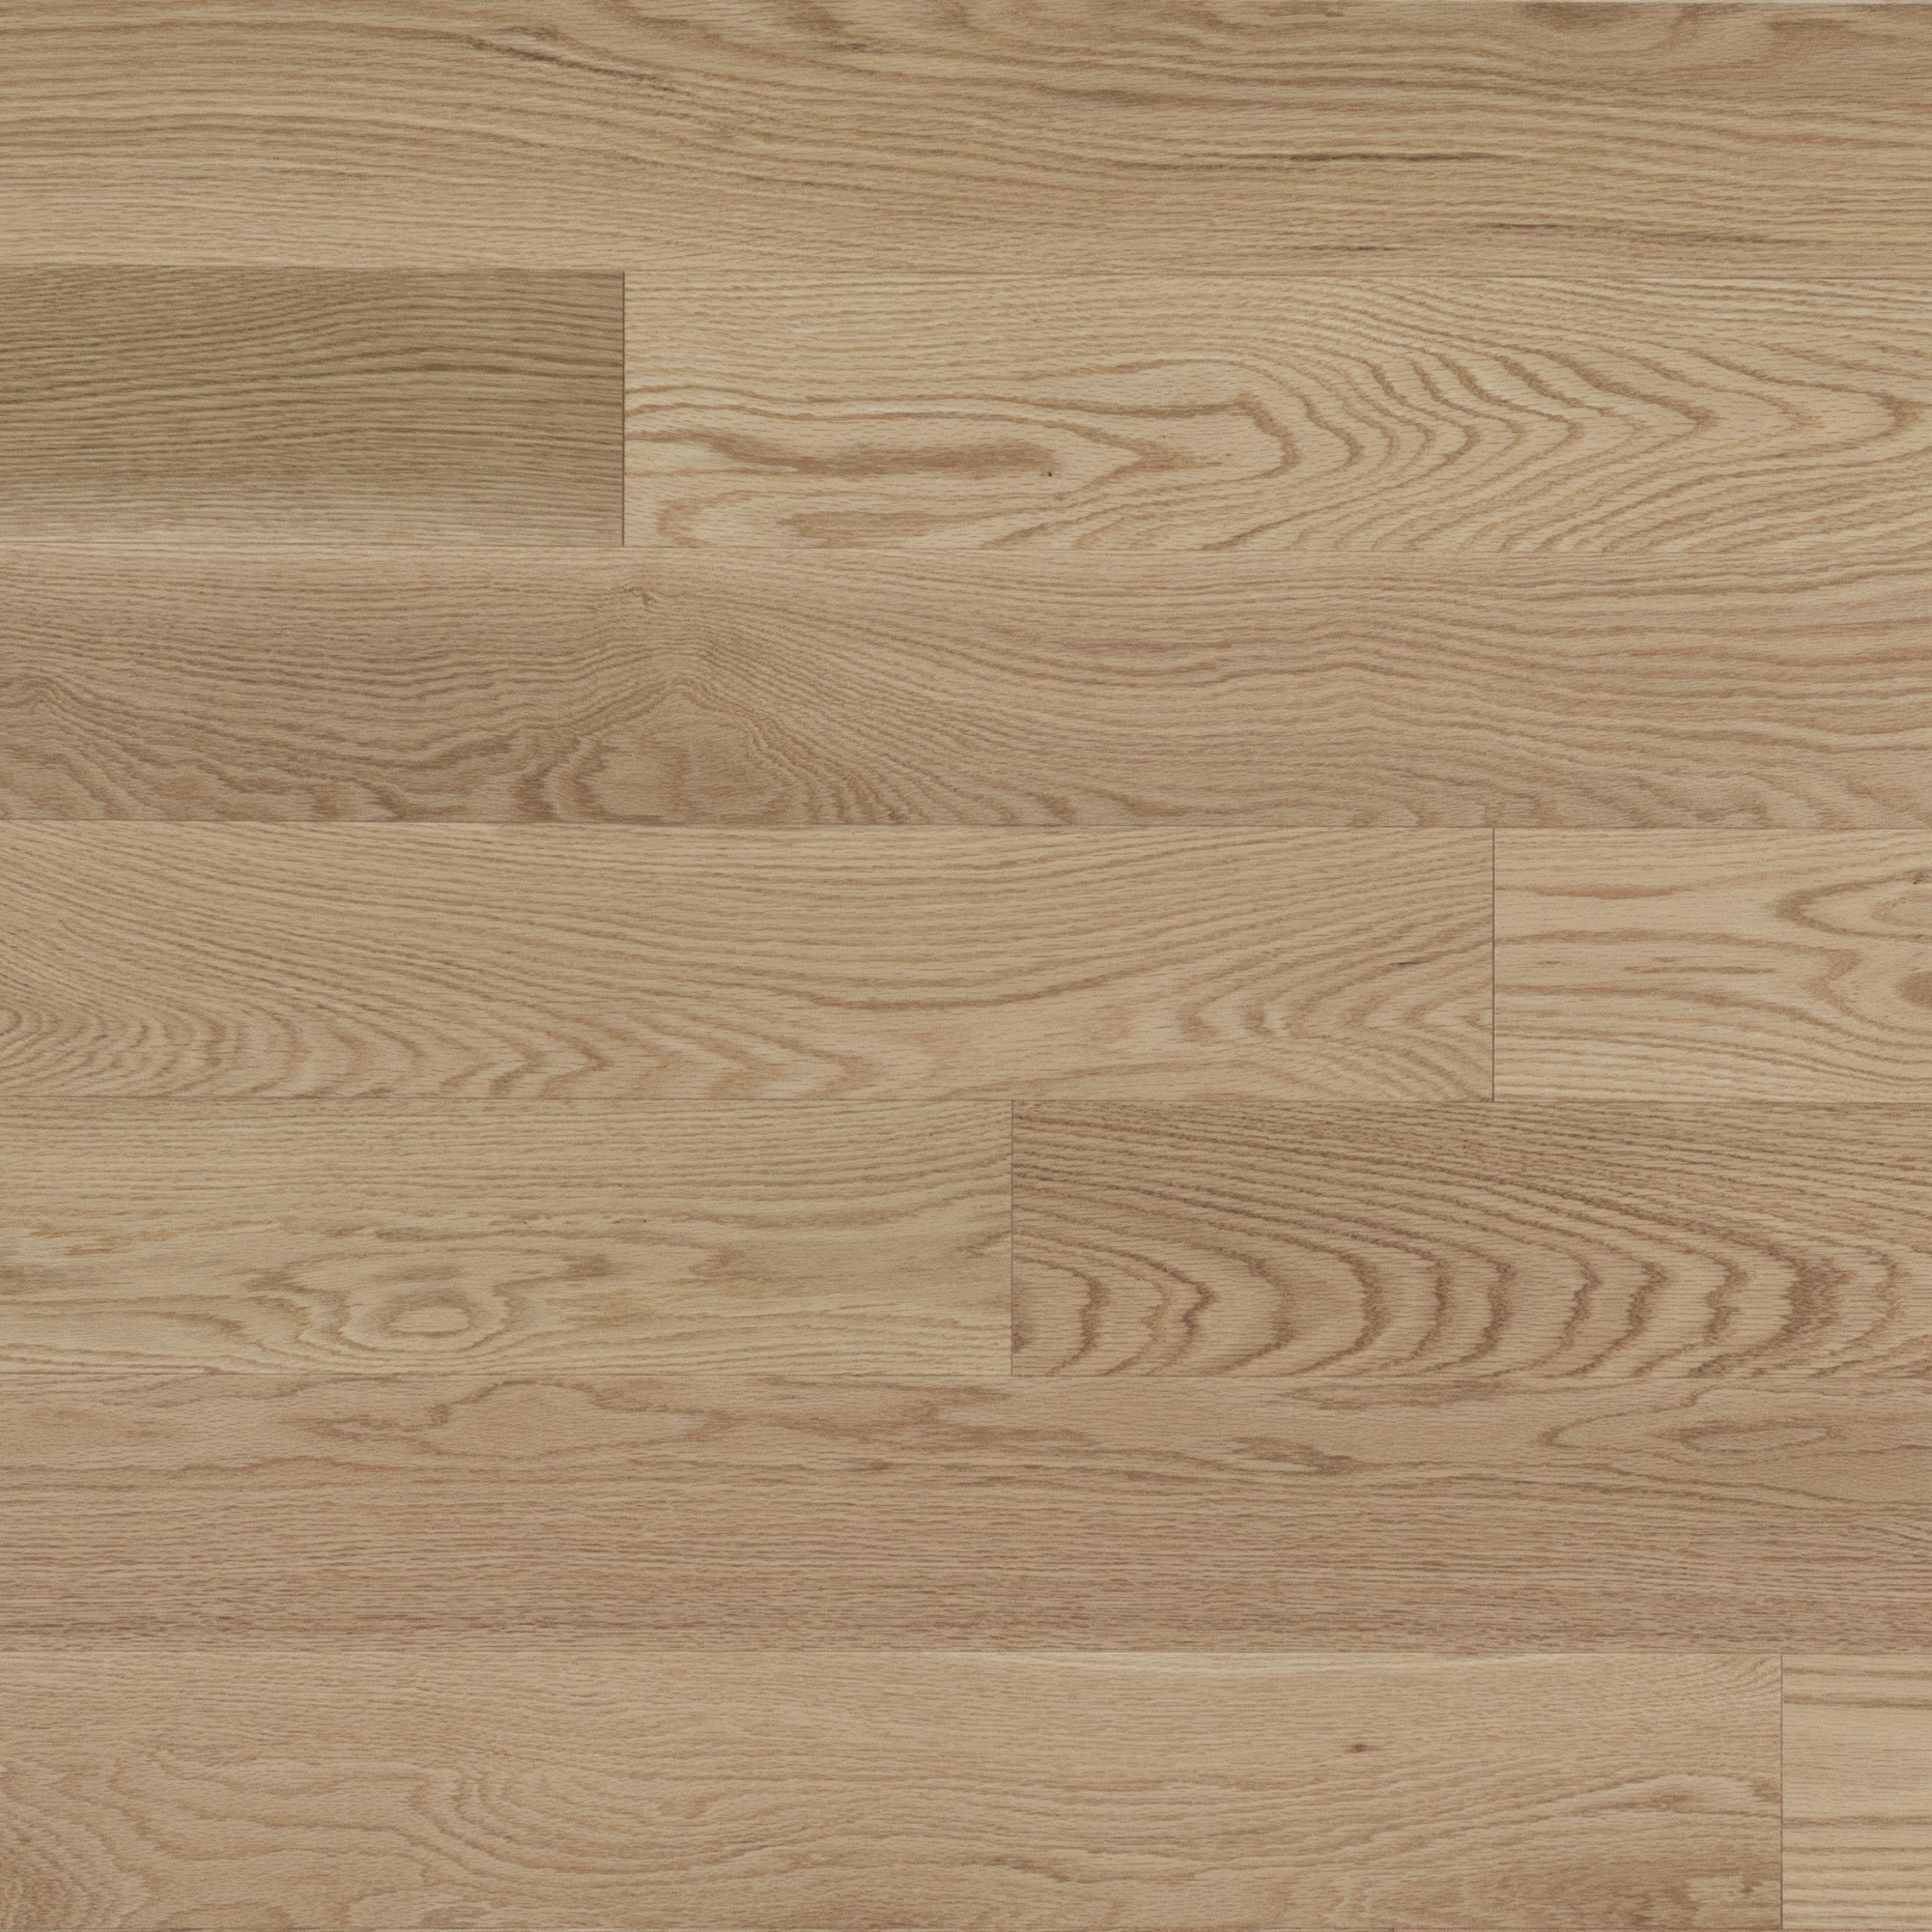 Red Oak Select And Better - Floor image